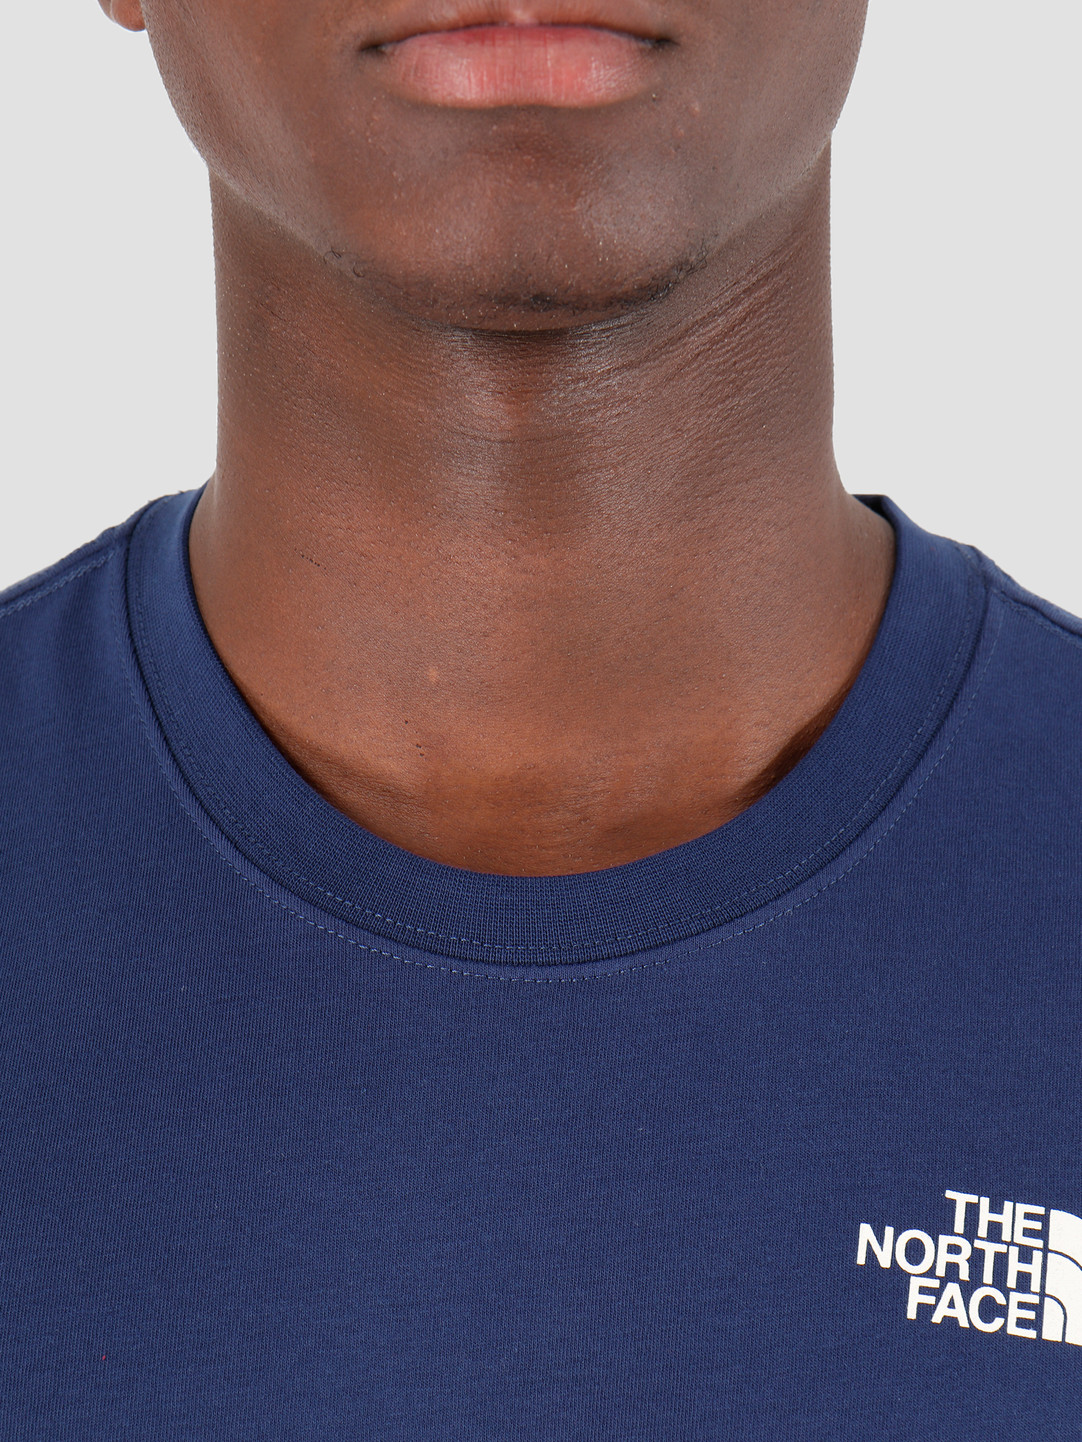 The North Face The North Face T-Shirt Redbox Montague Blue T92TX2JC6